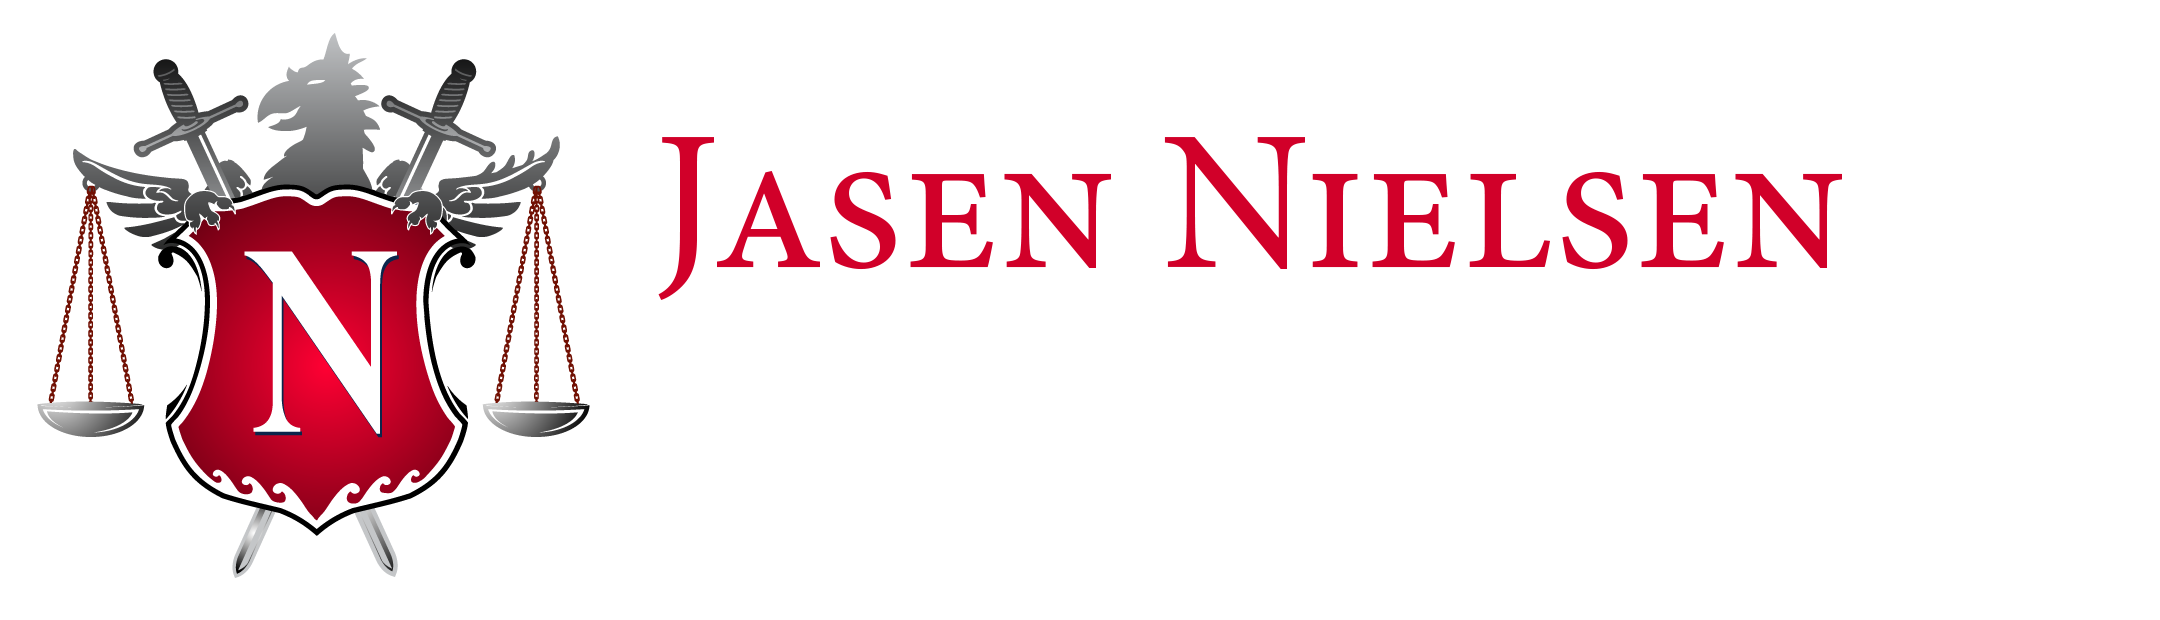 Jasen Nielsen DUI Defense Attorney.